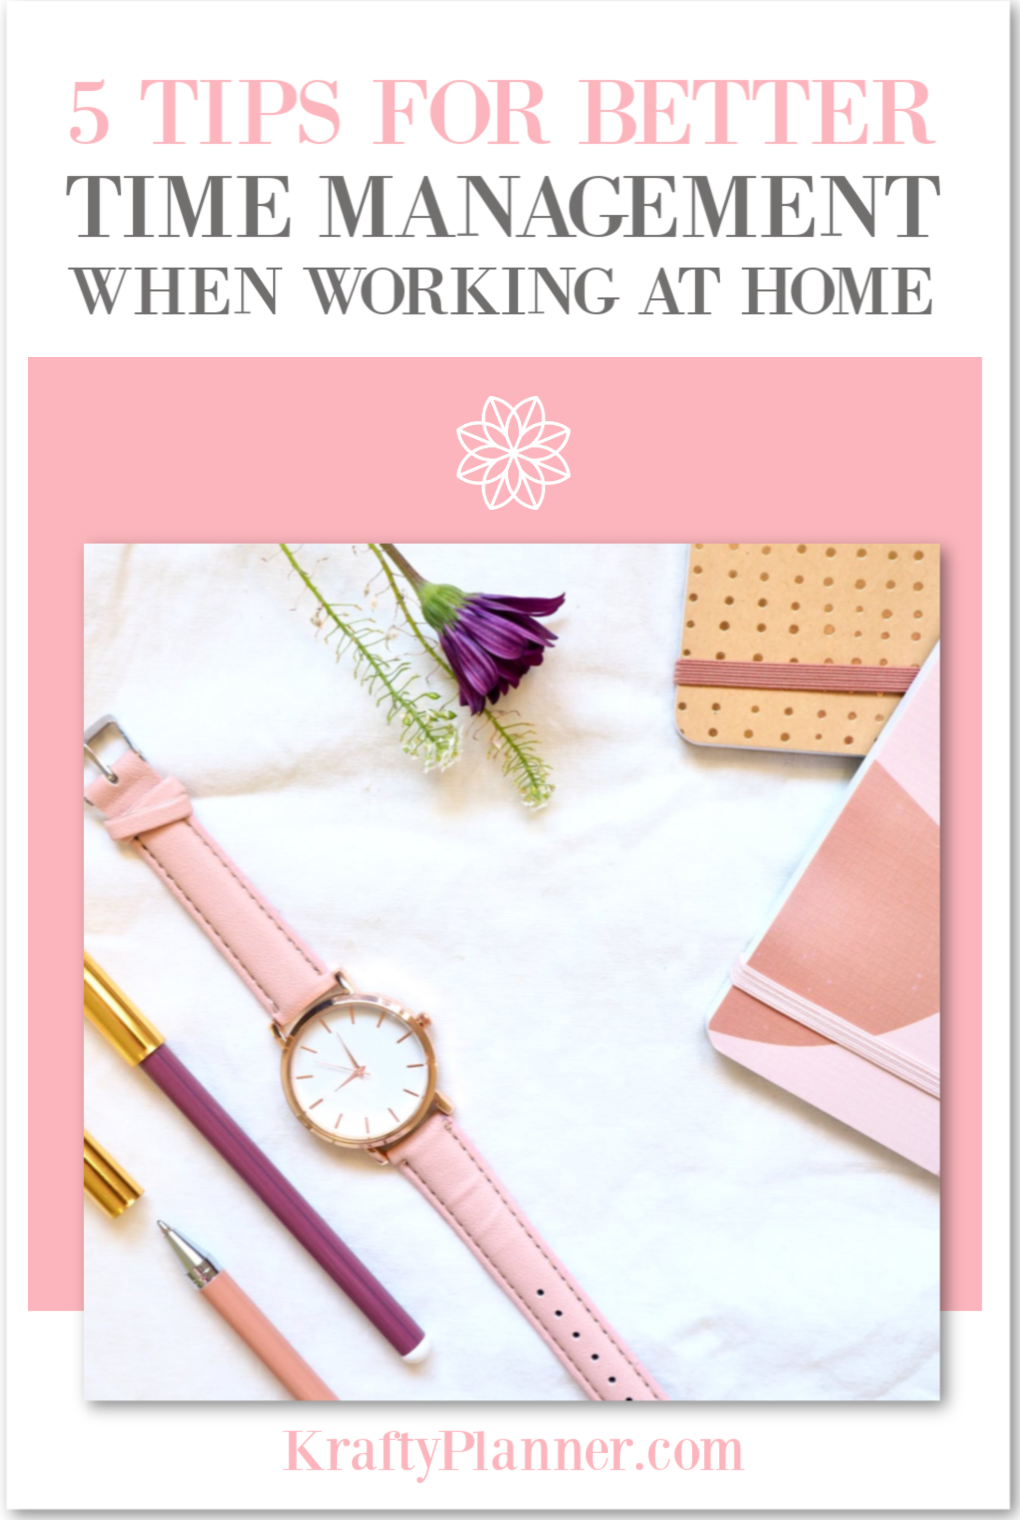 5 Tips for Better Time Management When Working at Home PIN 3.png